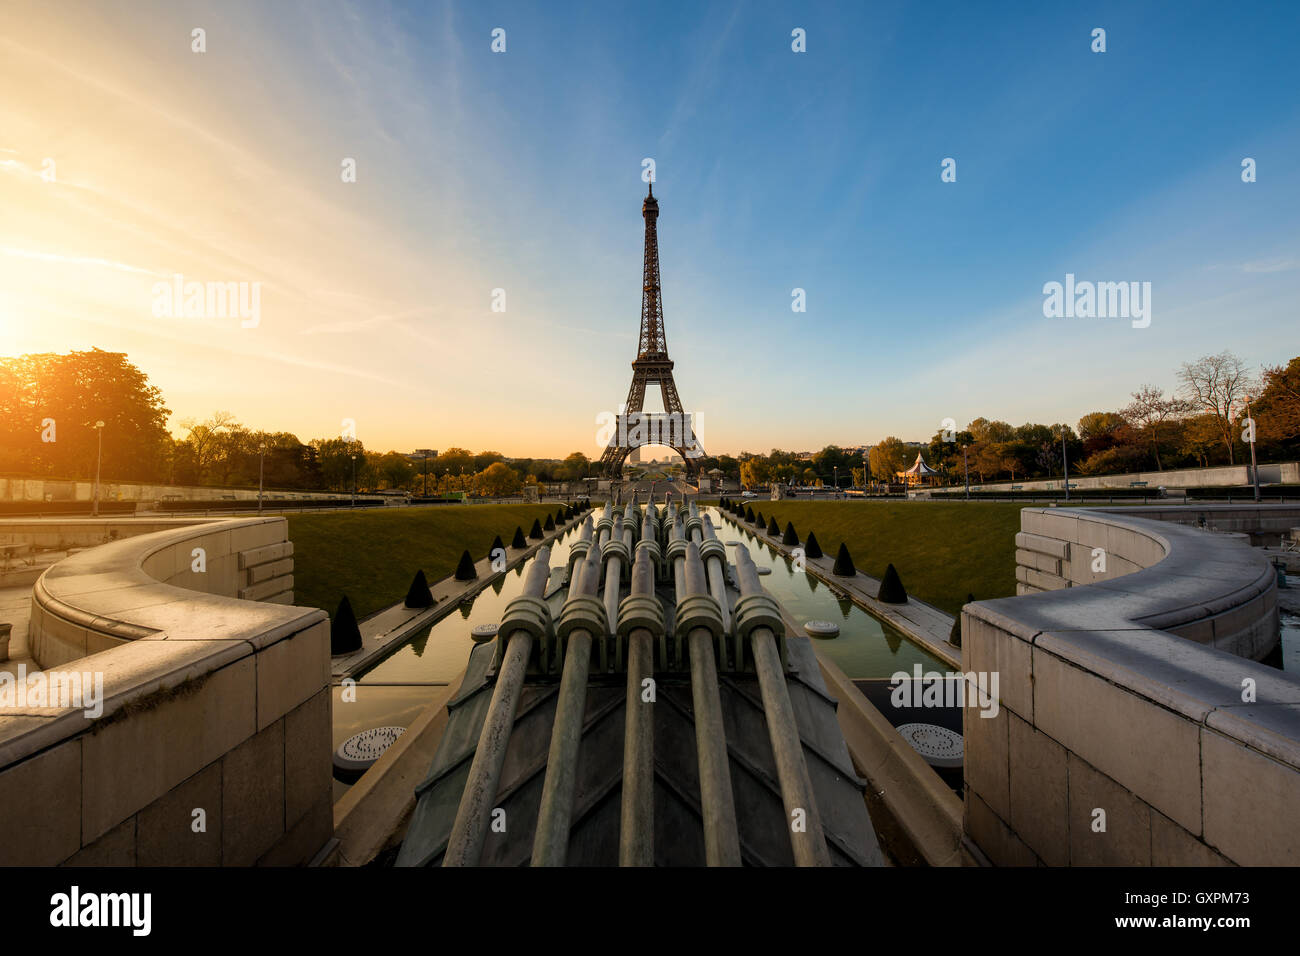 Sunrise in Eiffel Tower in Paris, France. Eiffel Tower is famous place in Paris, France. - Stock Image